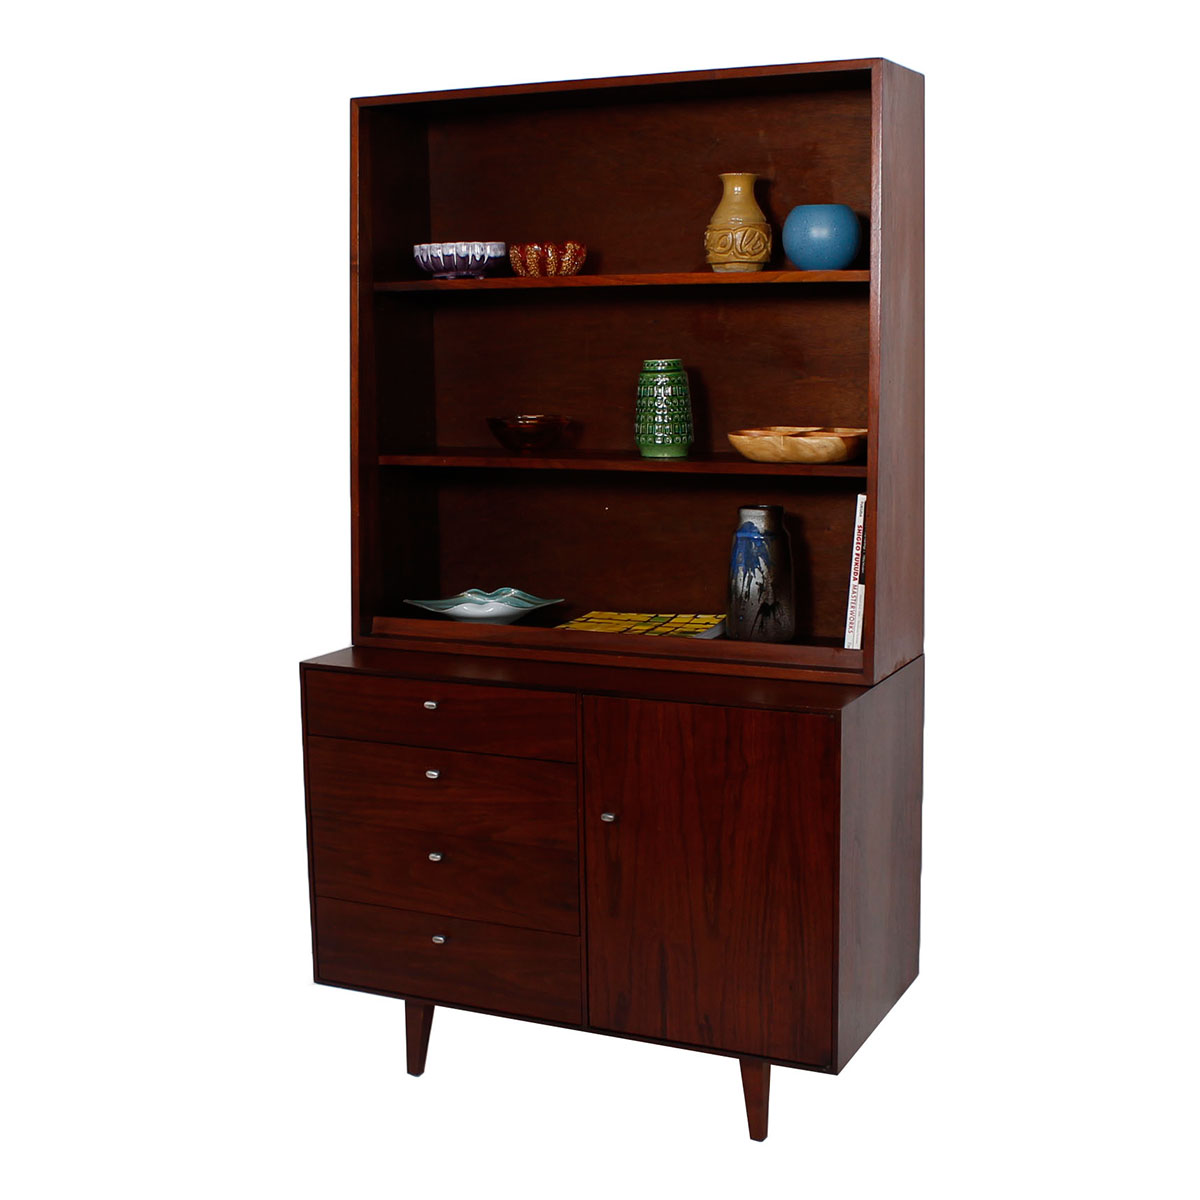 1950s Jens Risom 2-Piece Walnut Display / Compact Storage Cabinet